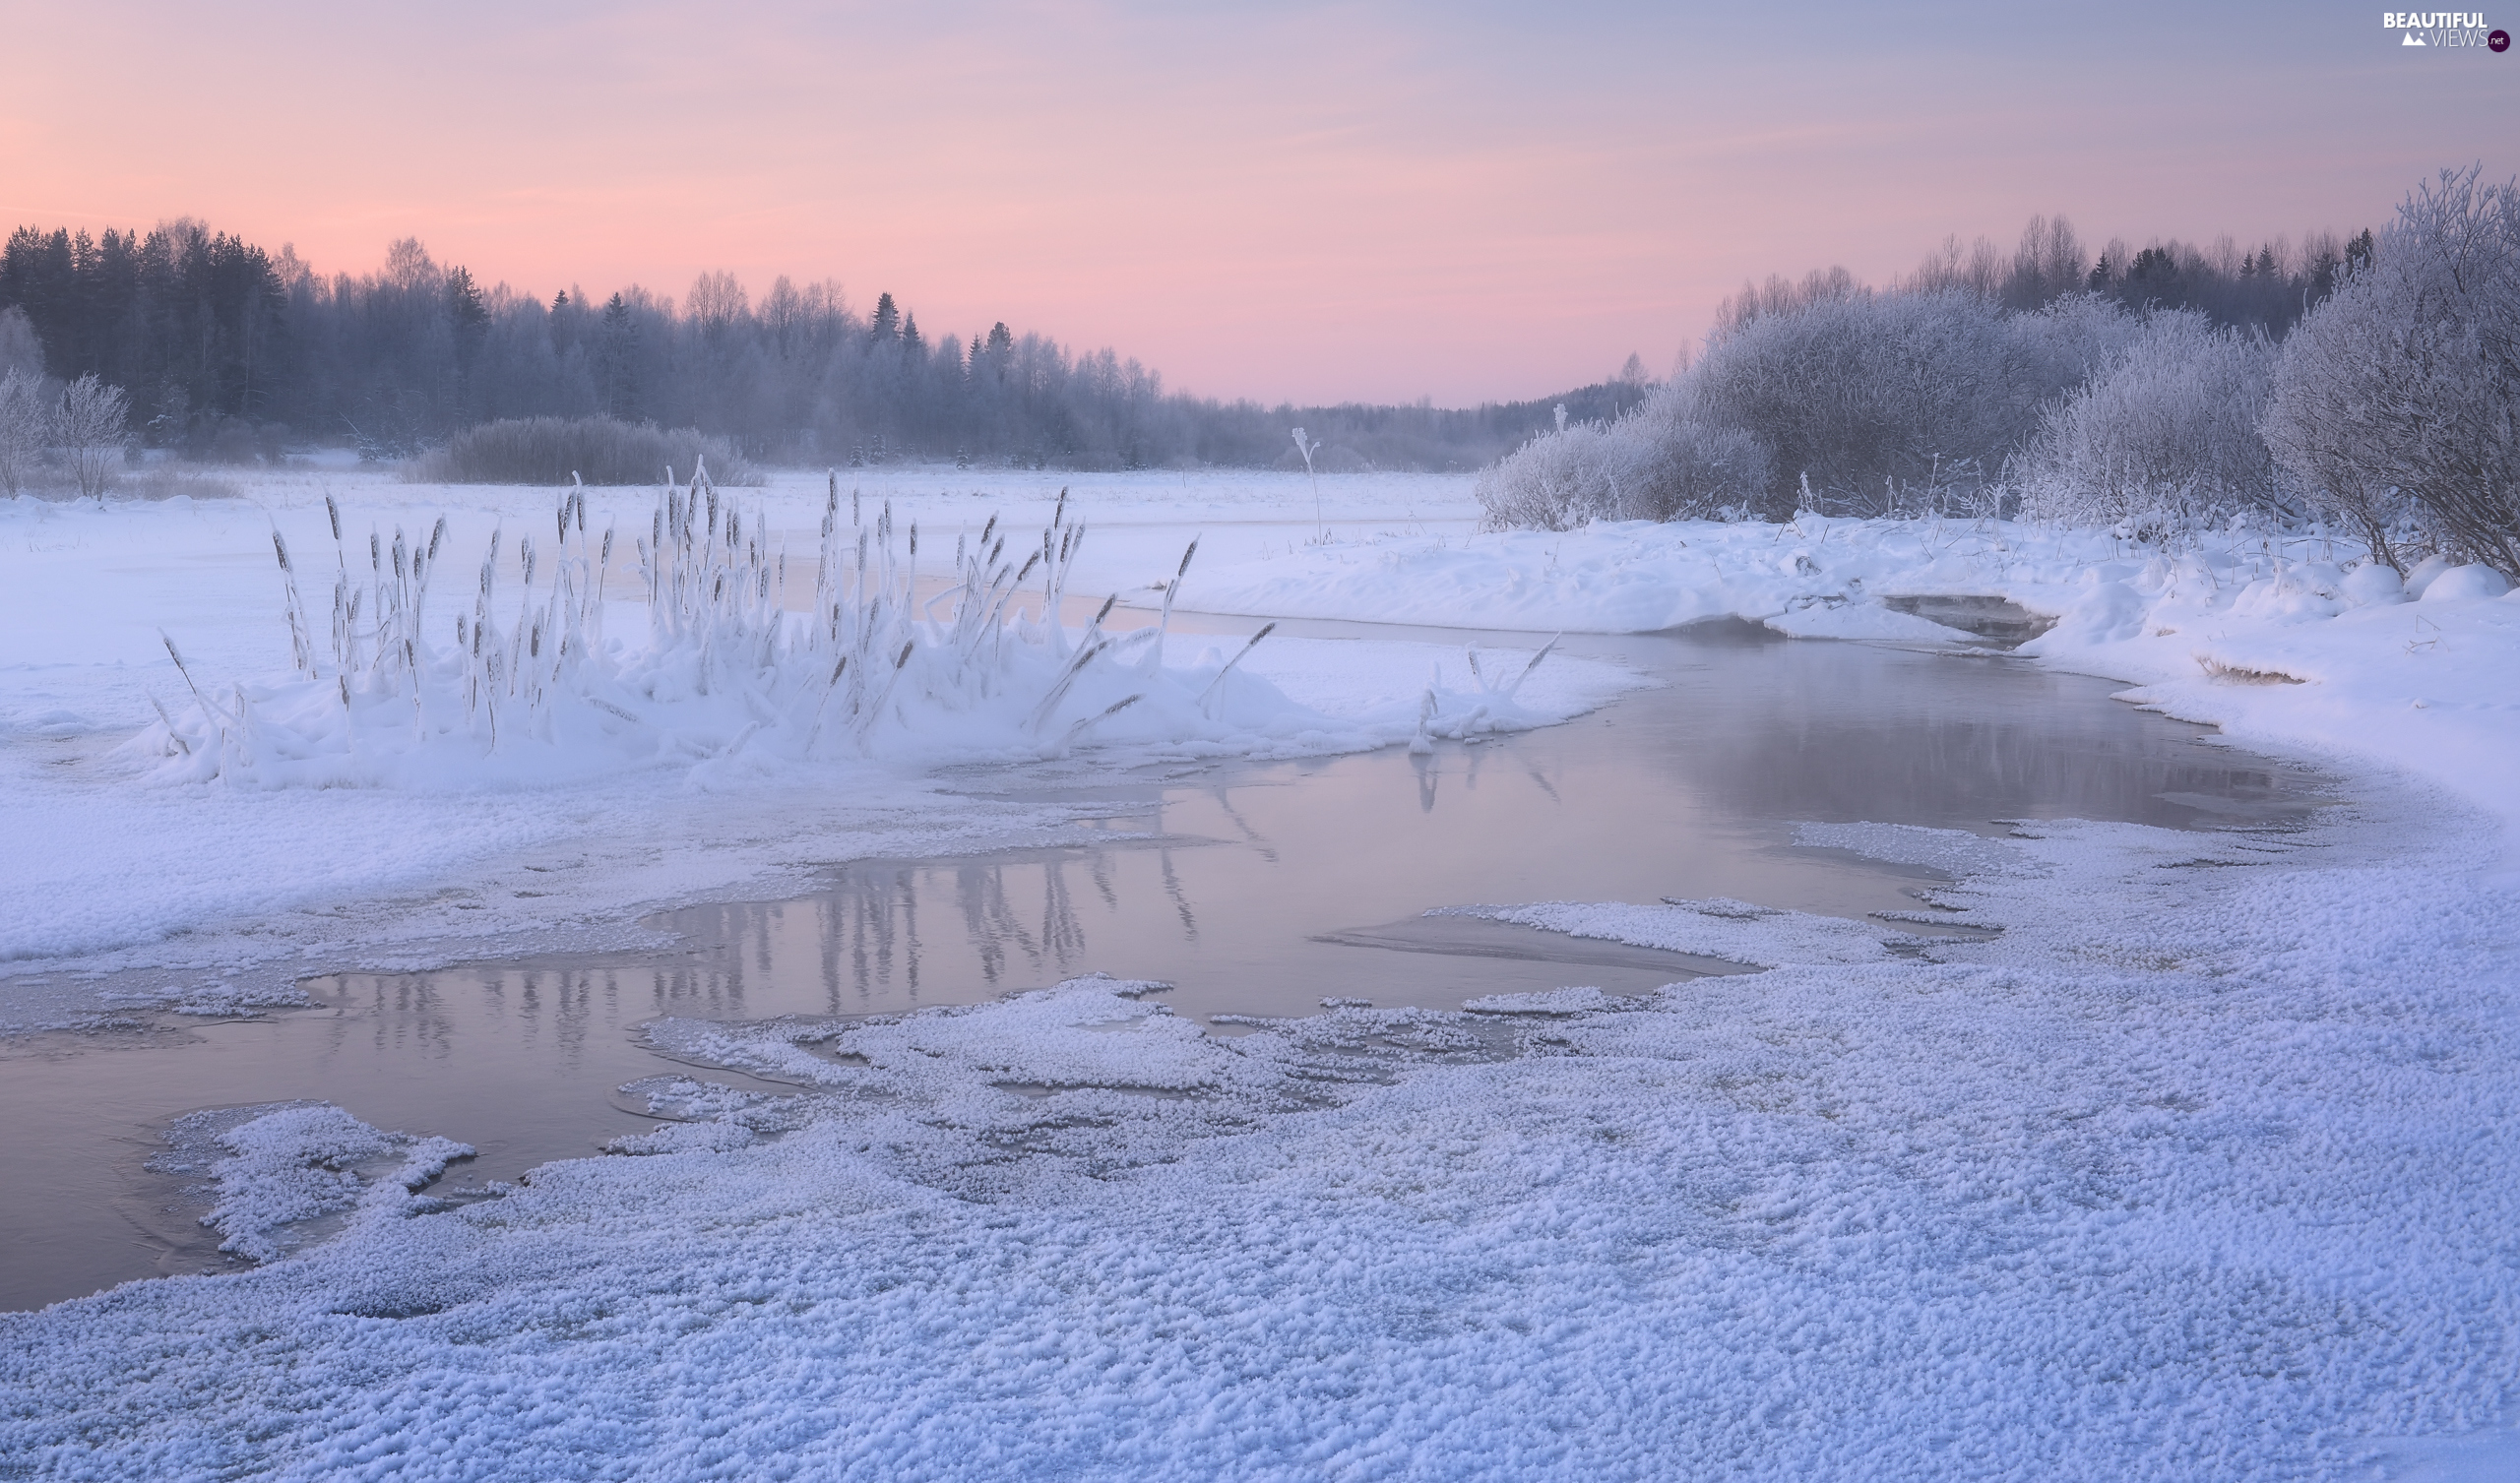 trees, viewes, Russia, Frost, Karelia, River, winter, White frost